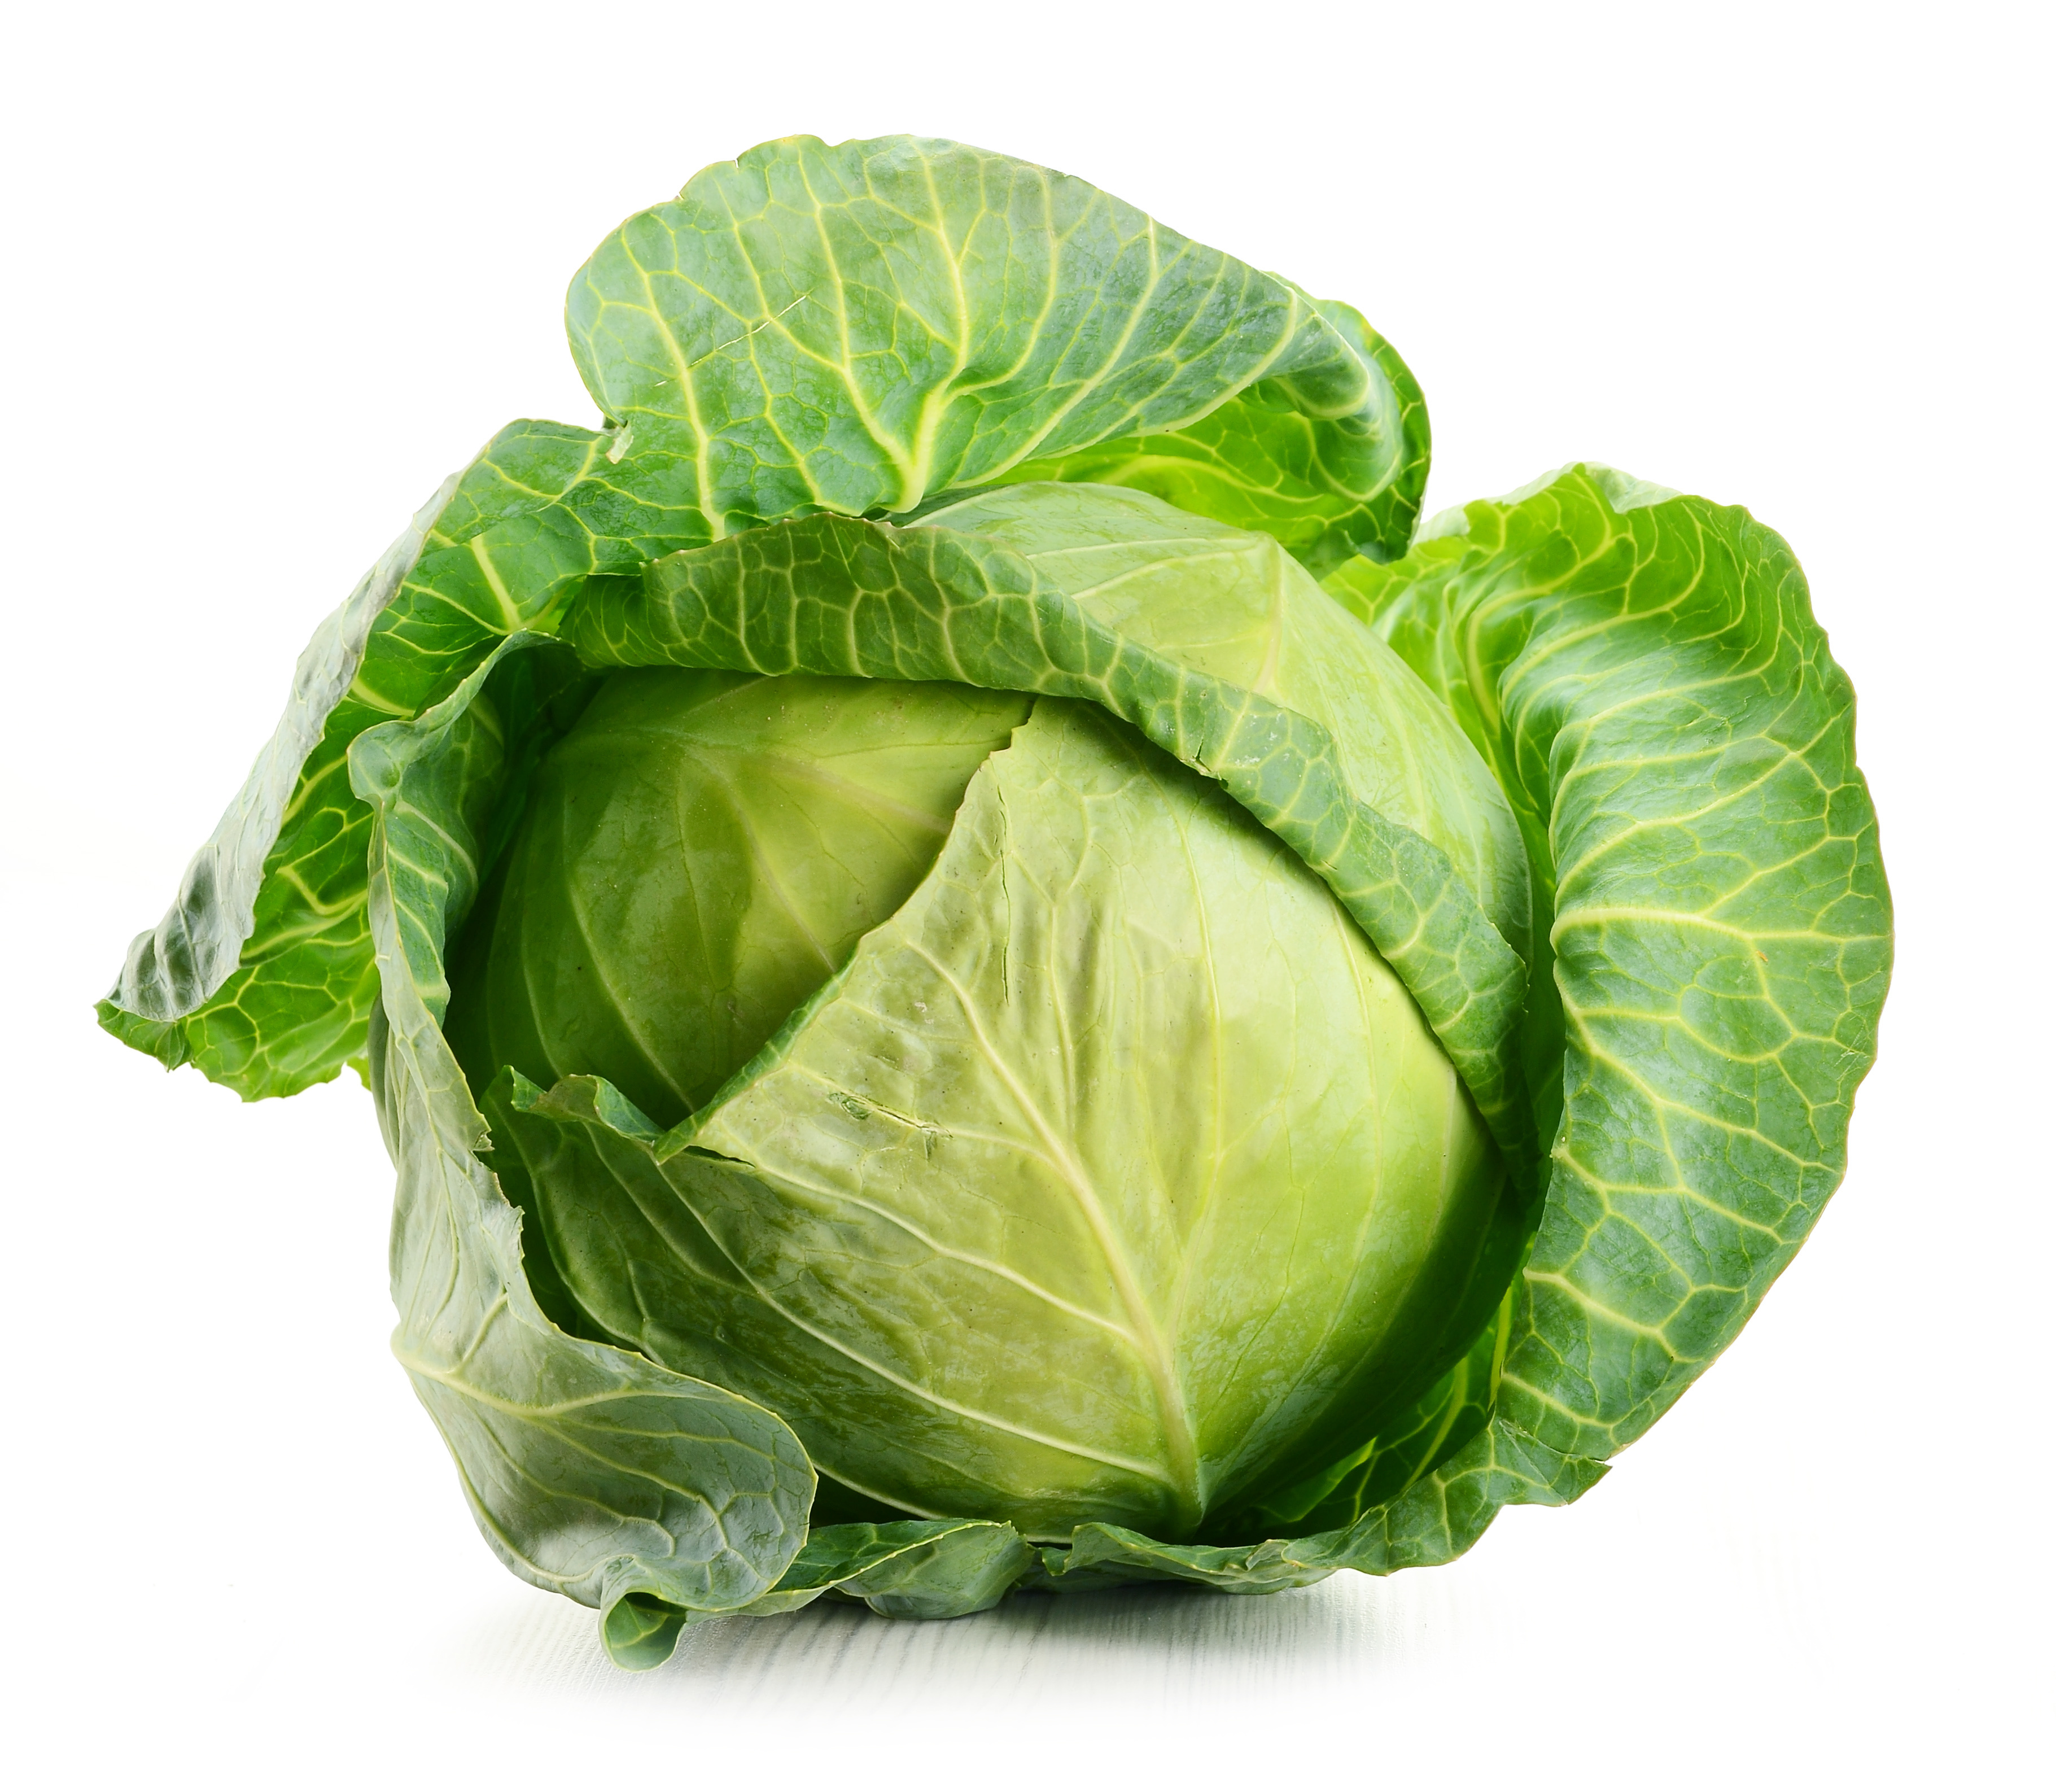 Raw Cabbage Head 243.66 Kb